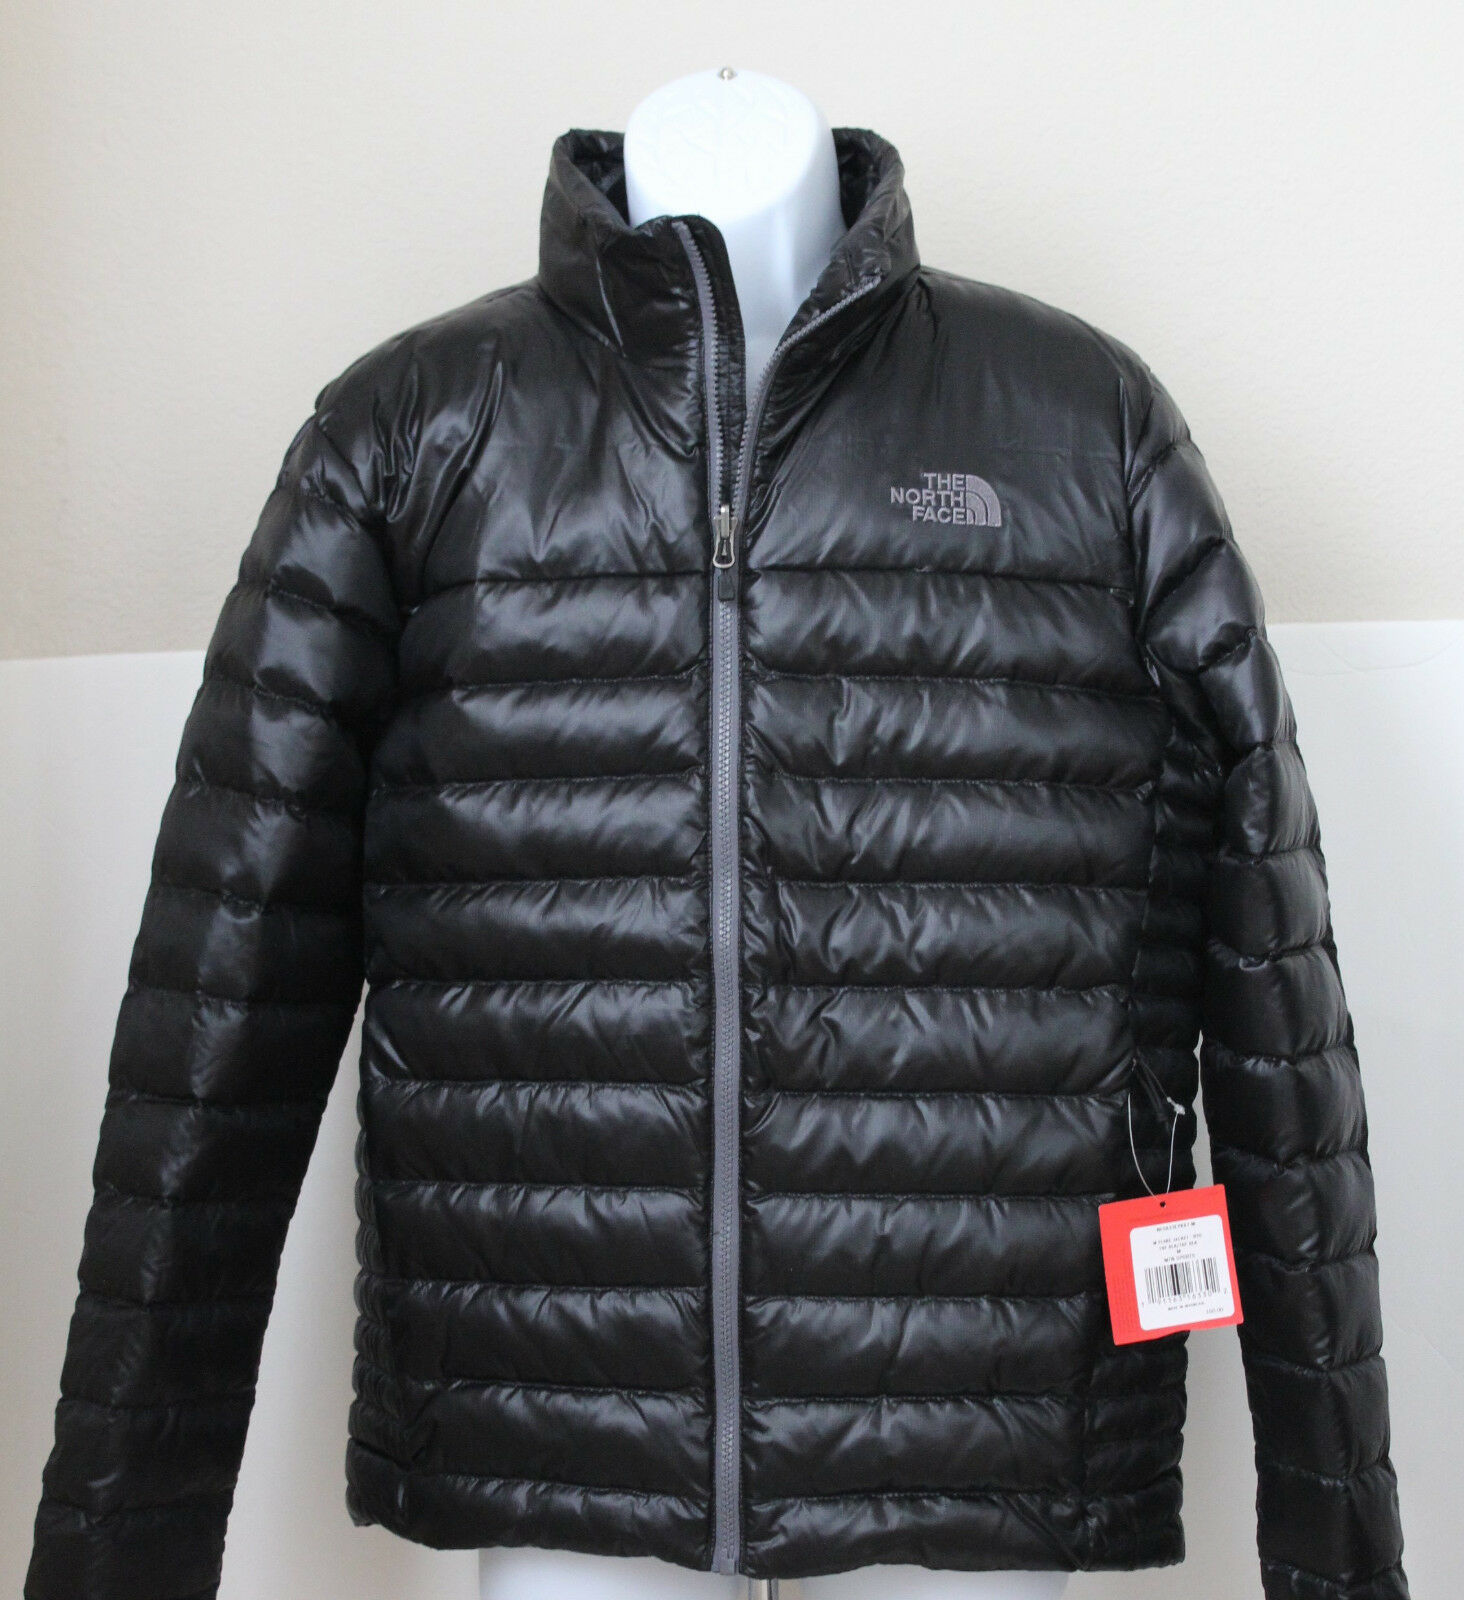 ee0eccc25 NWT The North Face Men's Flare Down 550 RTO Ski Jacket Puffer Black  M,L,XL,2XL